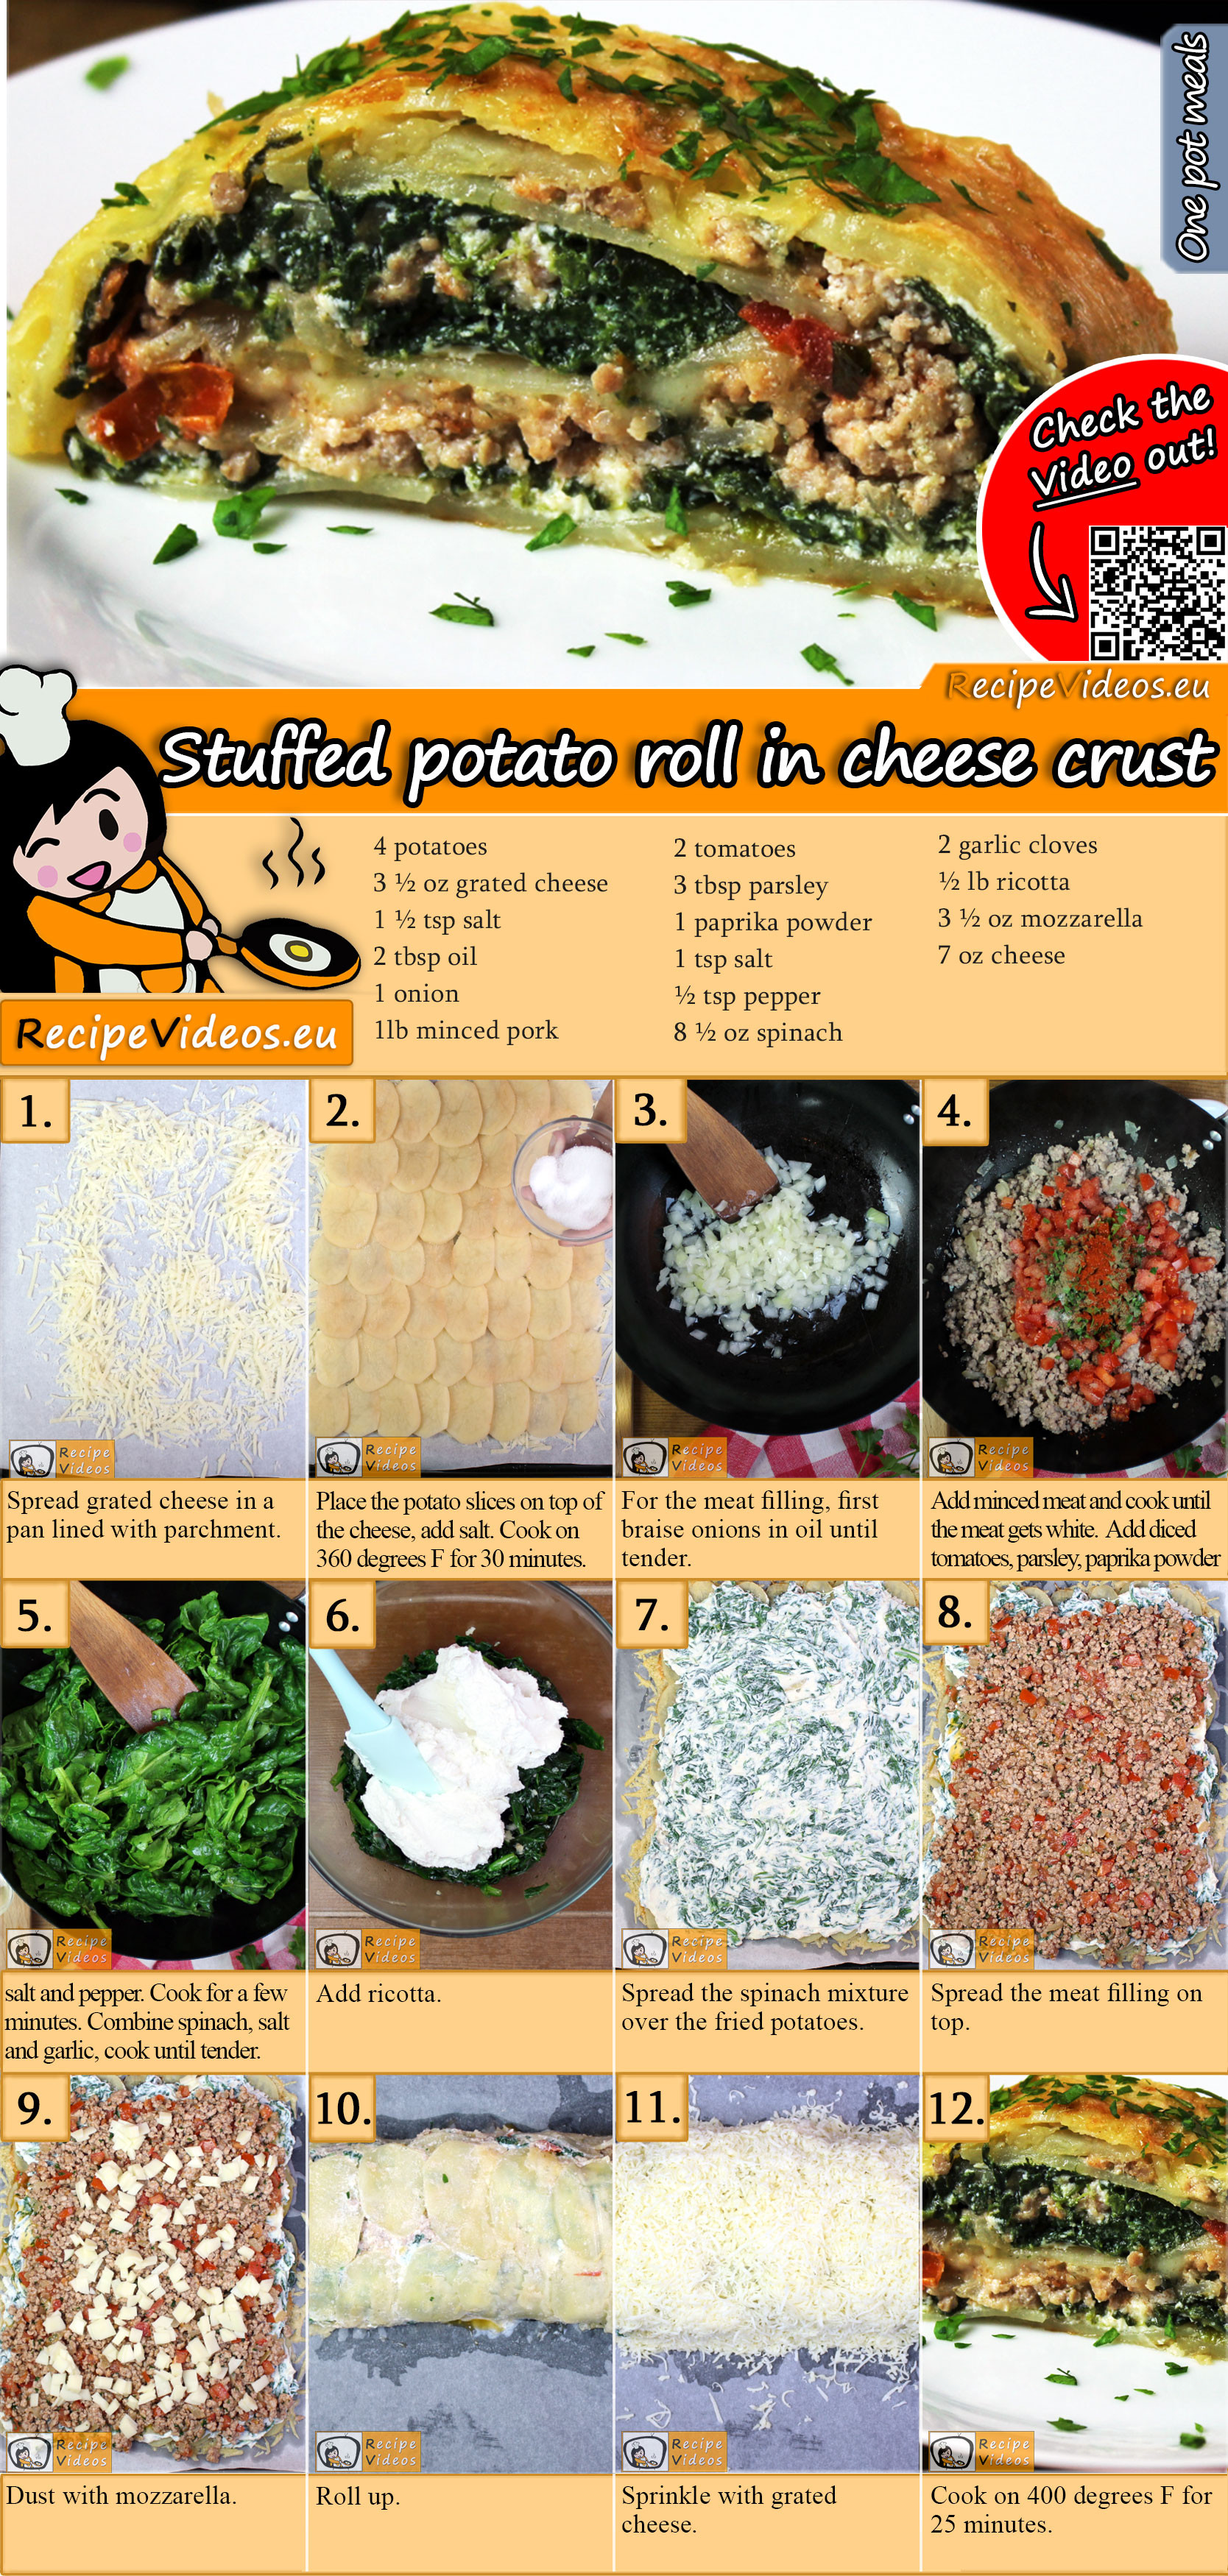 Stuffed potato roll in cheese crust recipe with video